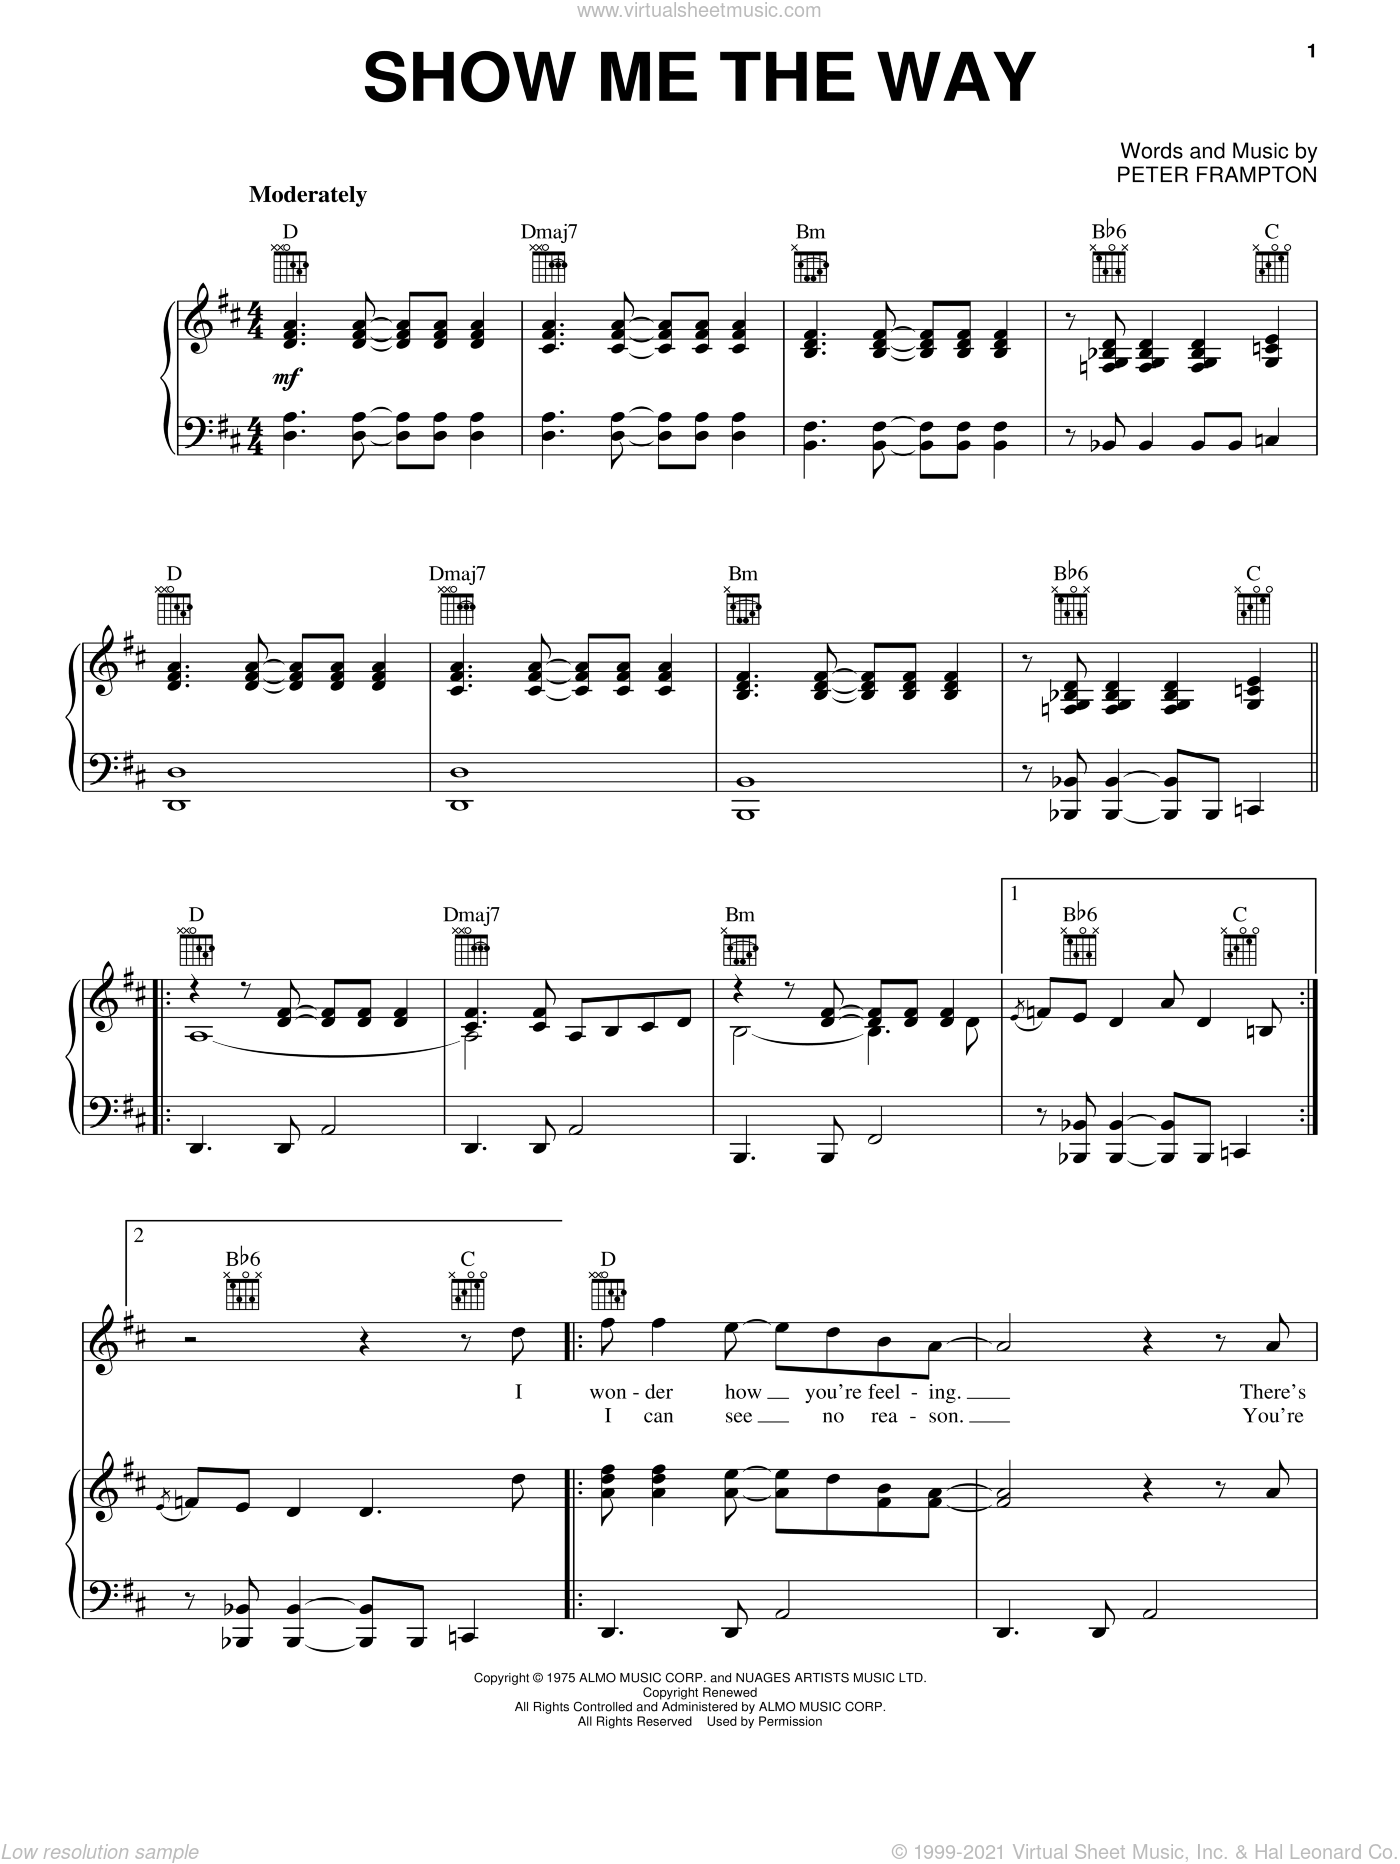 Show Me The Way sheet music for voice, piano or guitar by Peter Frampton. Score Image Preview.